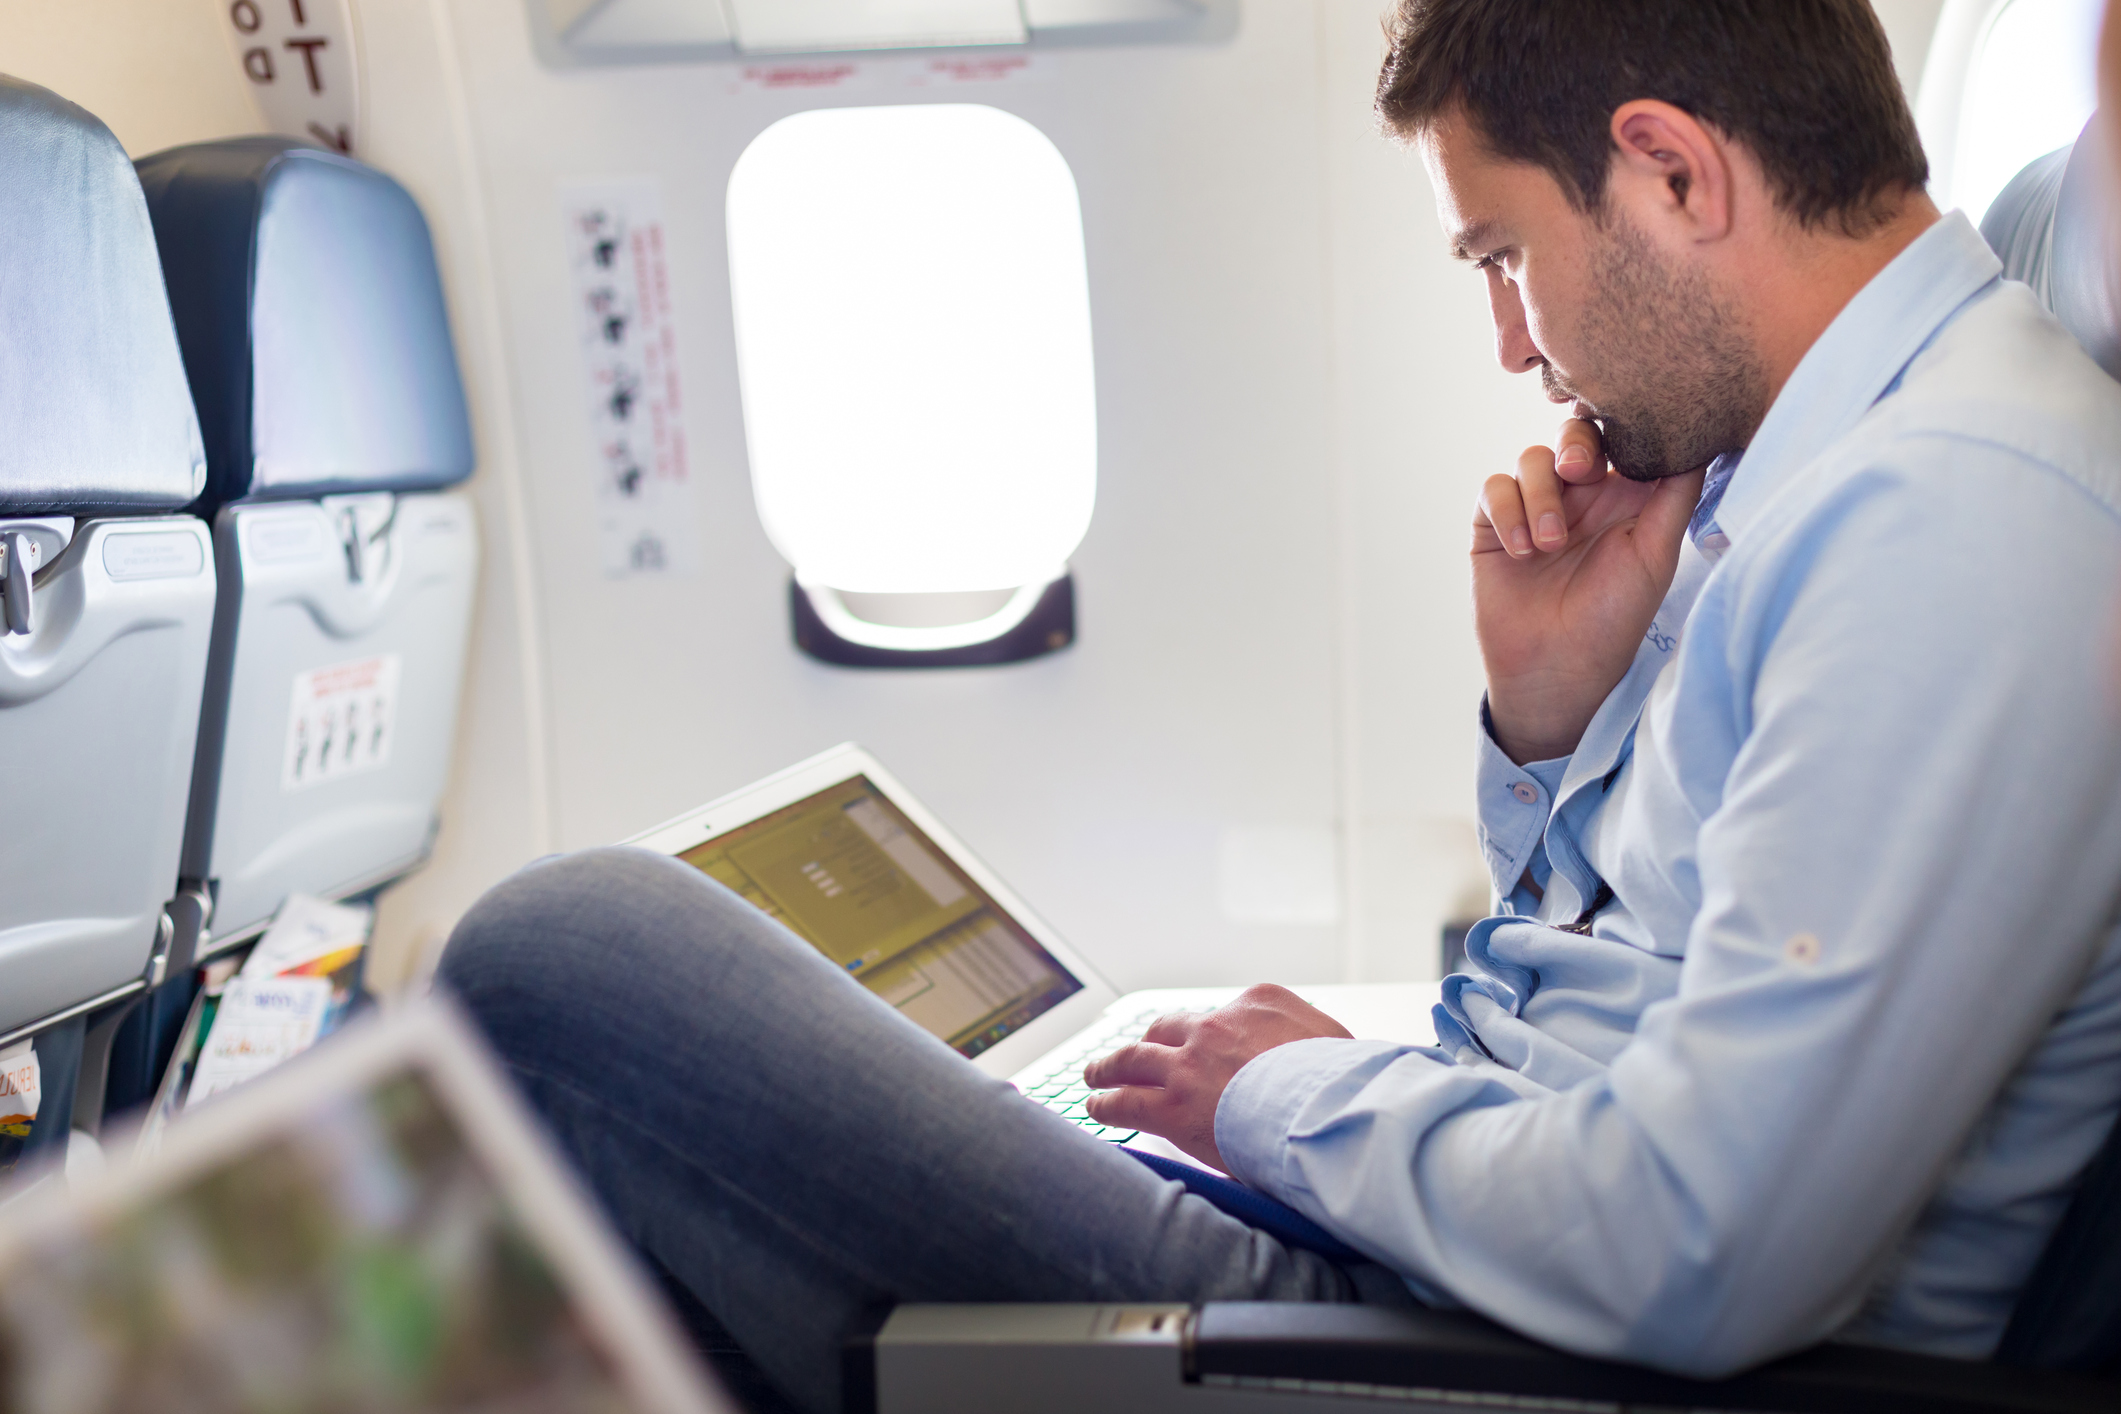 Measures to protect your data from cyber criminals during travel